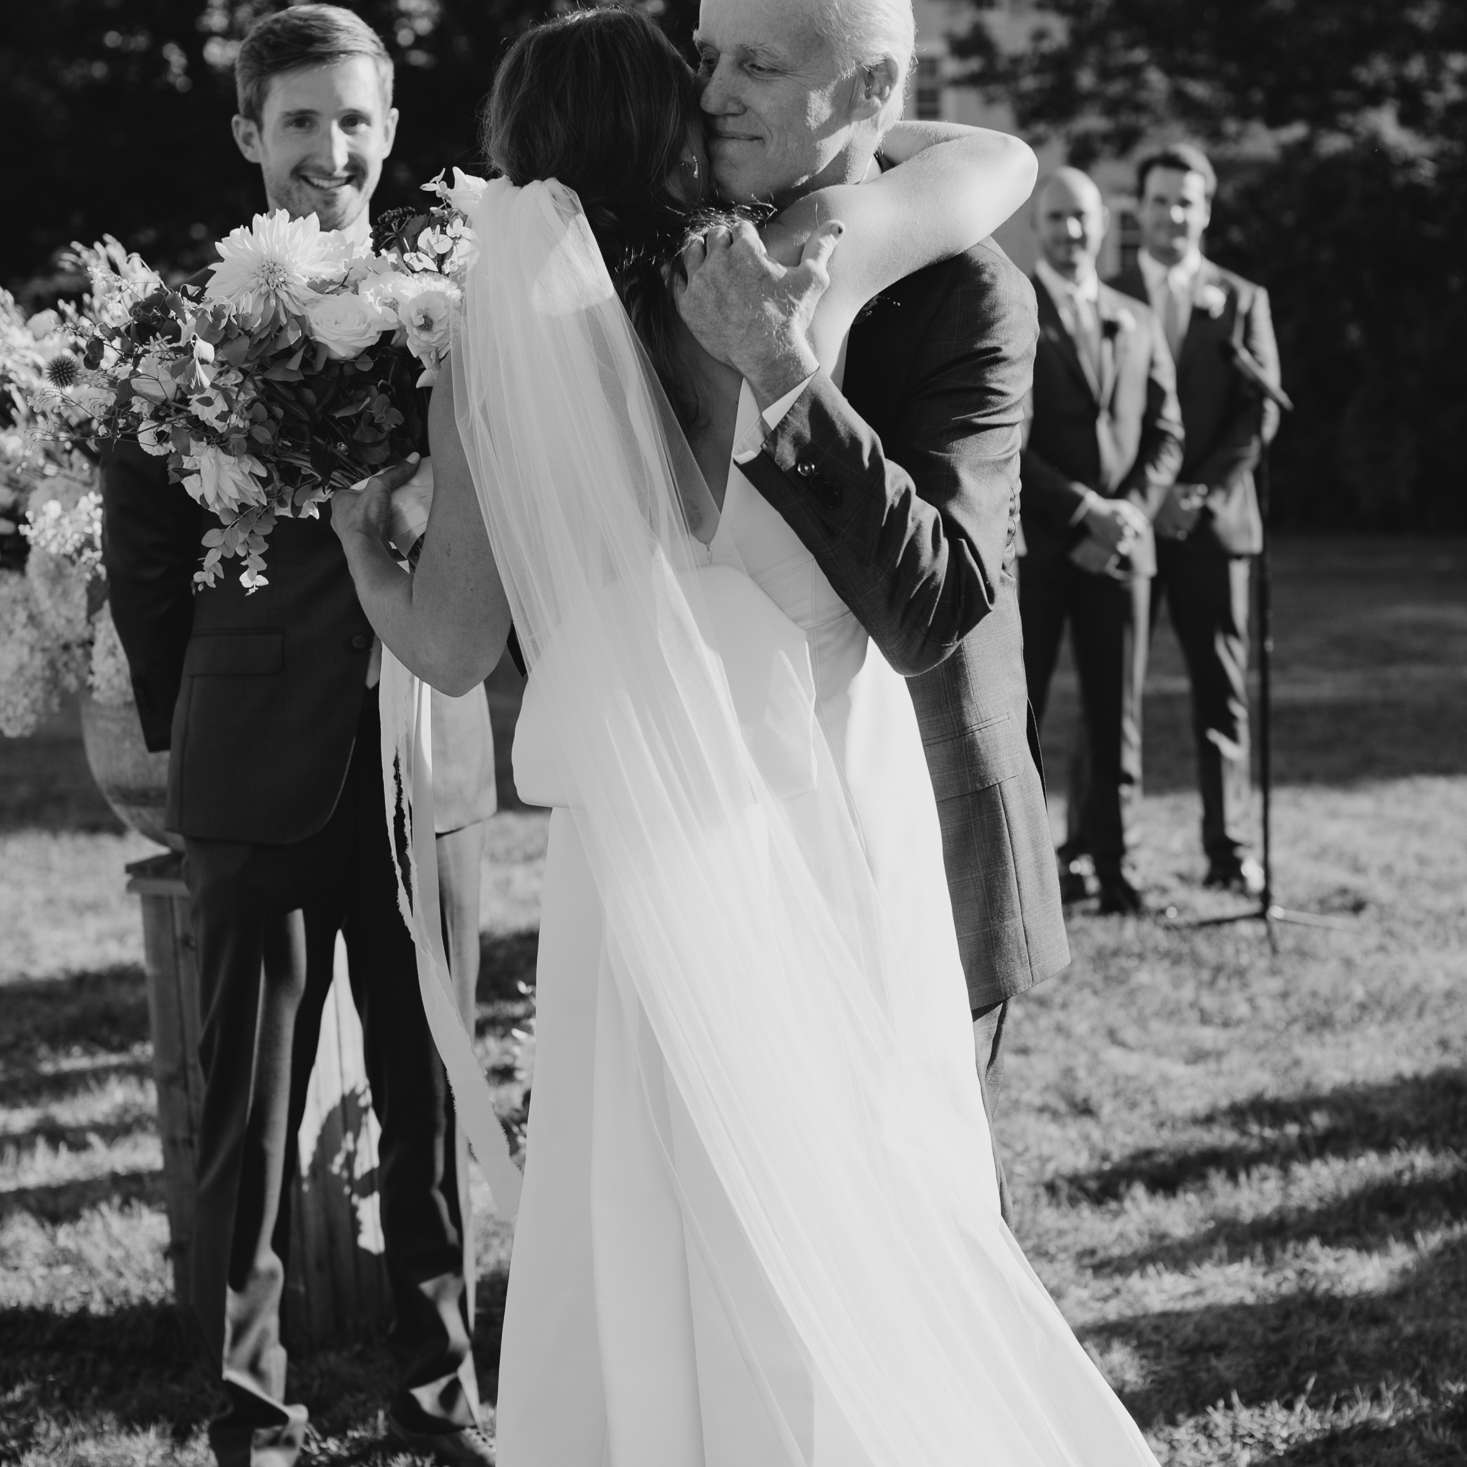 at-home rustic massachusetts wedding, father hugging bride ceremony